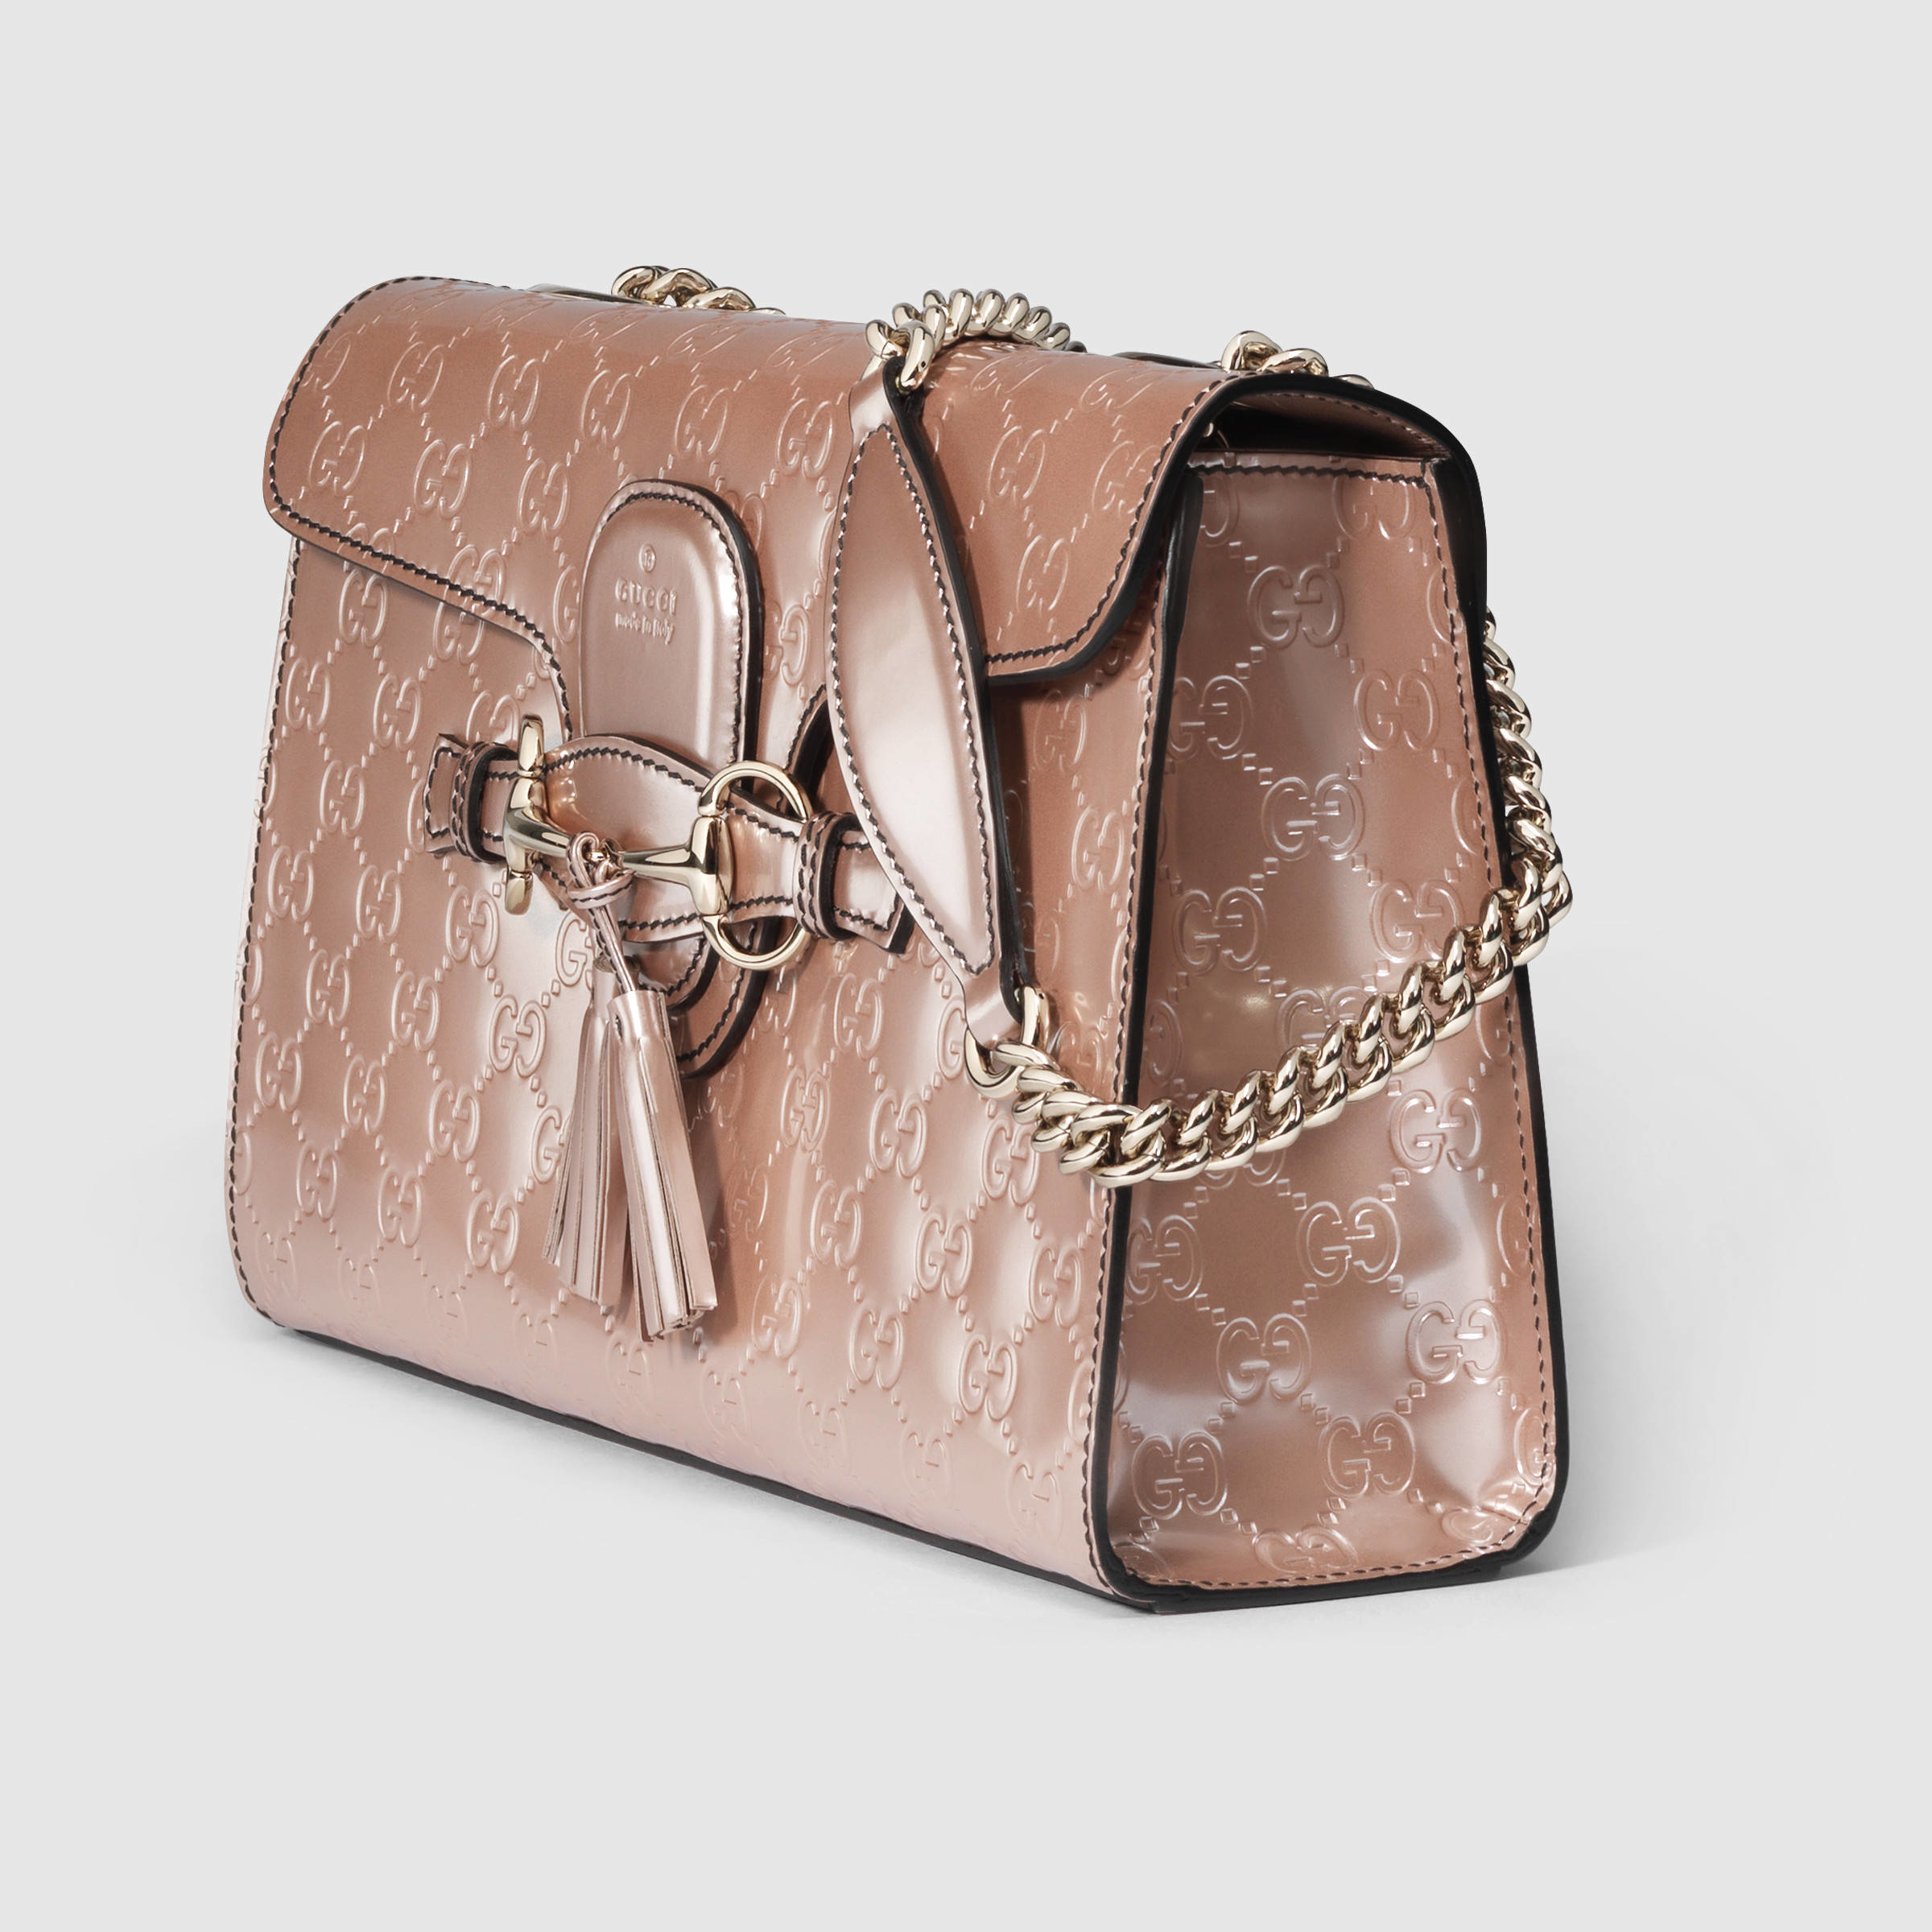 bde04fbdc90 Lyst - Gucci Emily Guccissima Chain Shoulder Bag in Natural